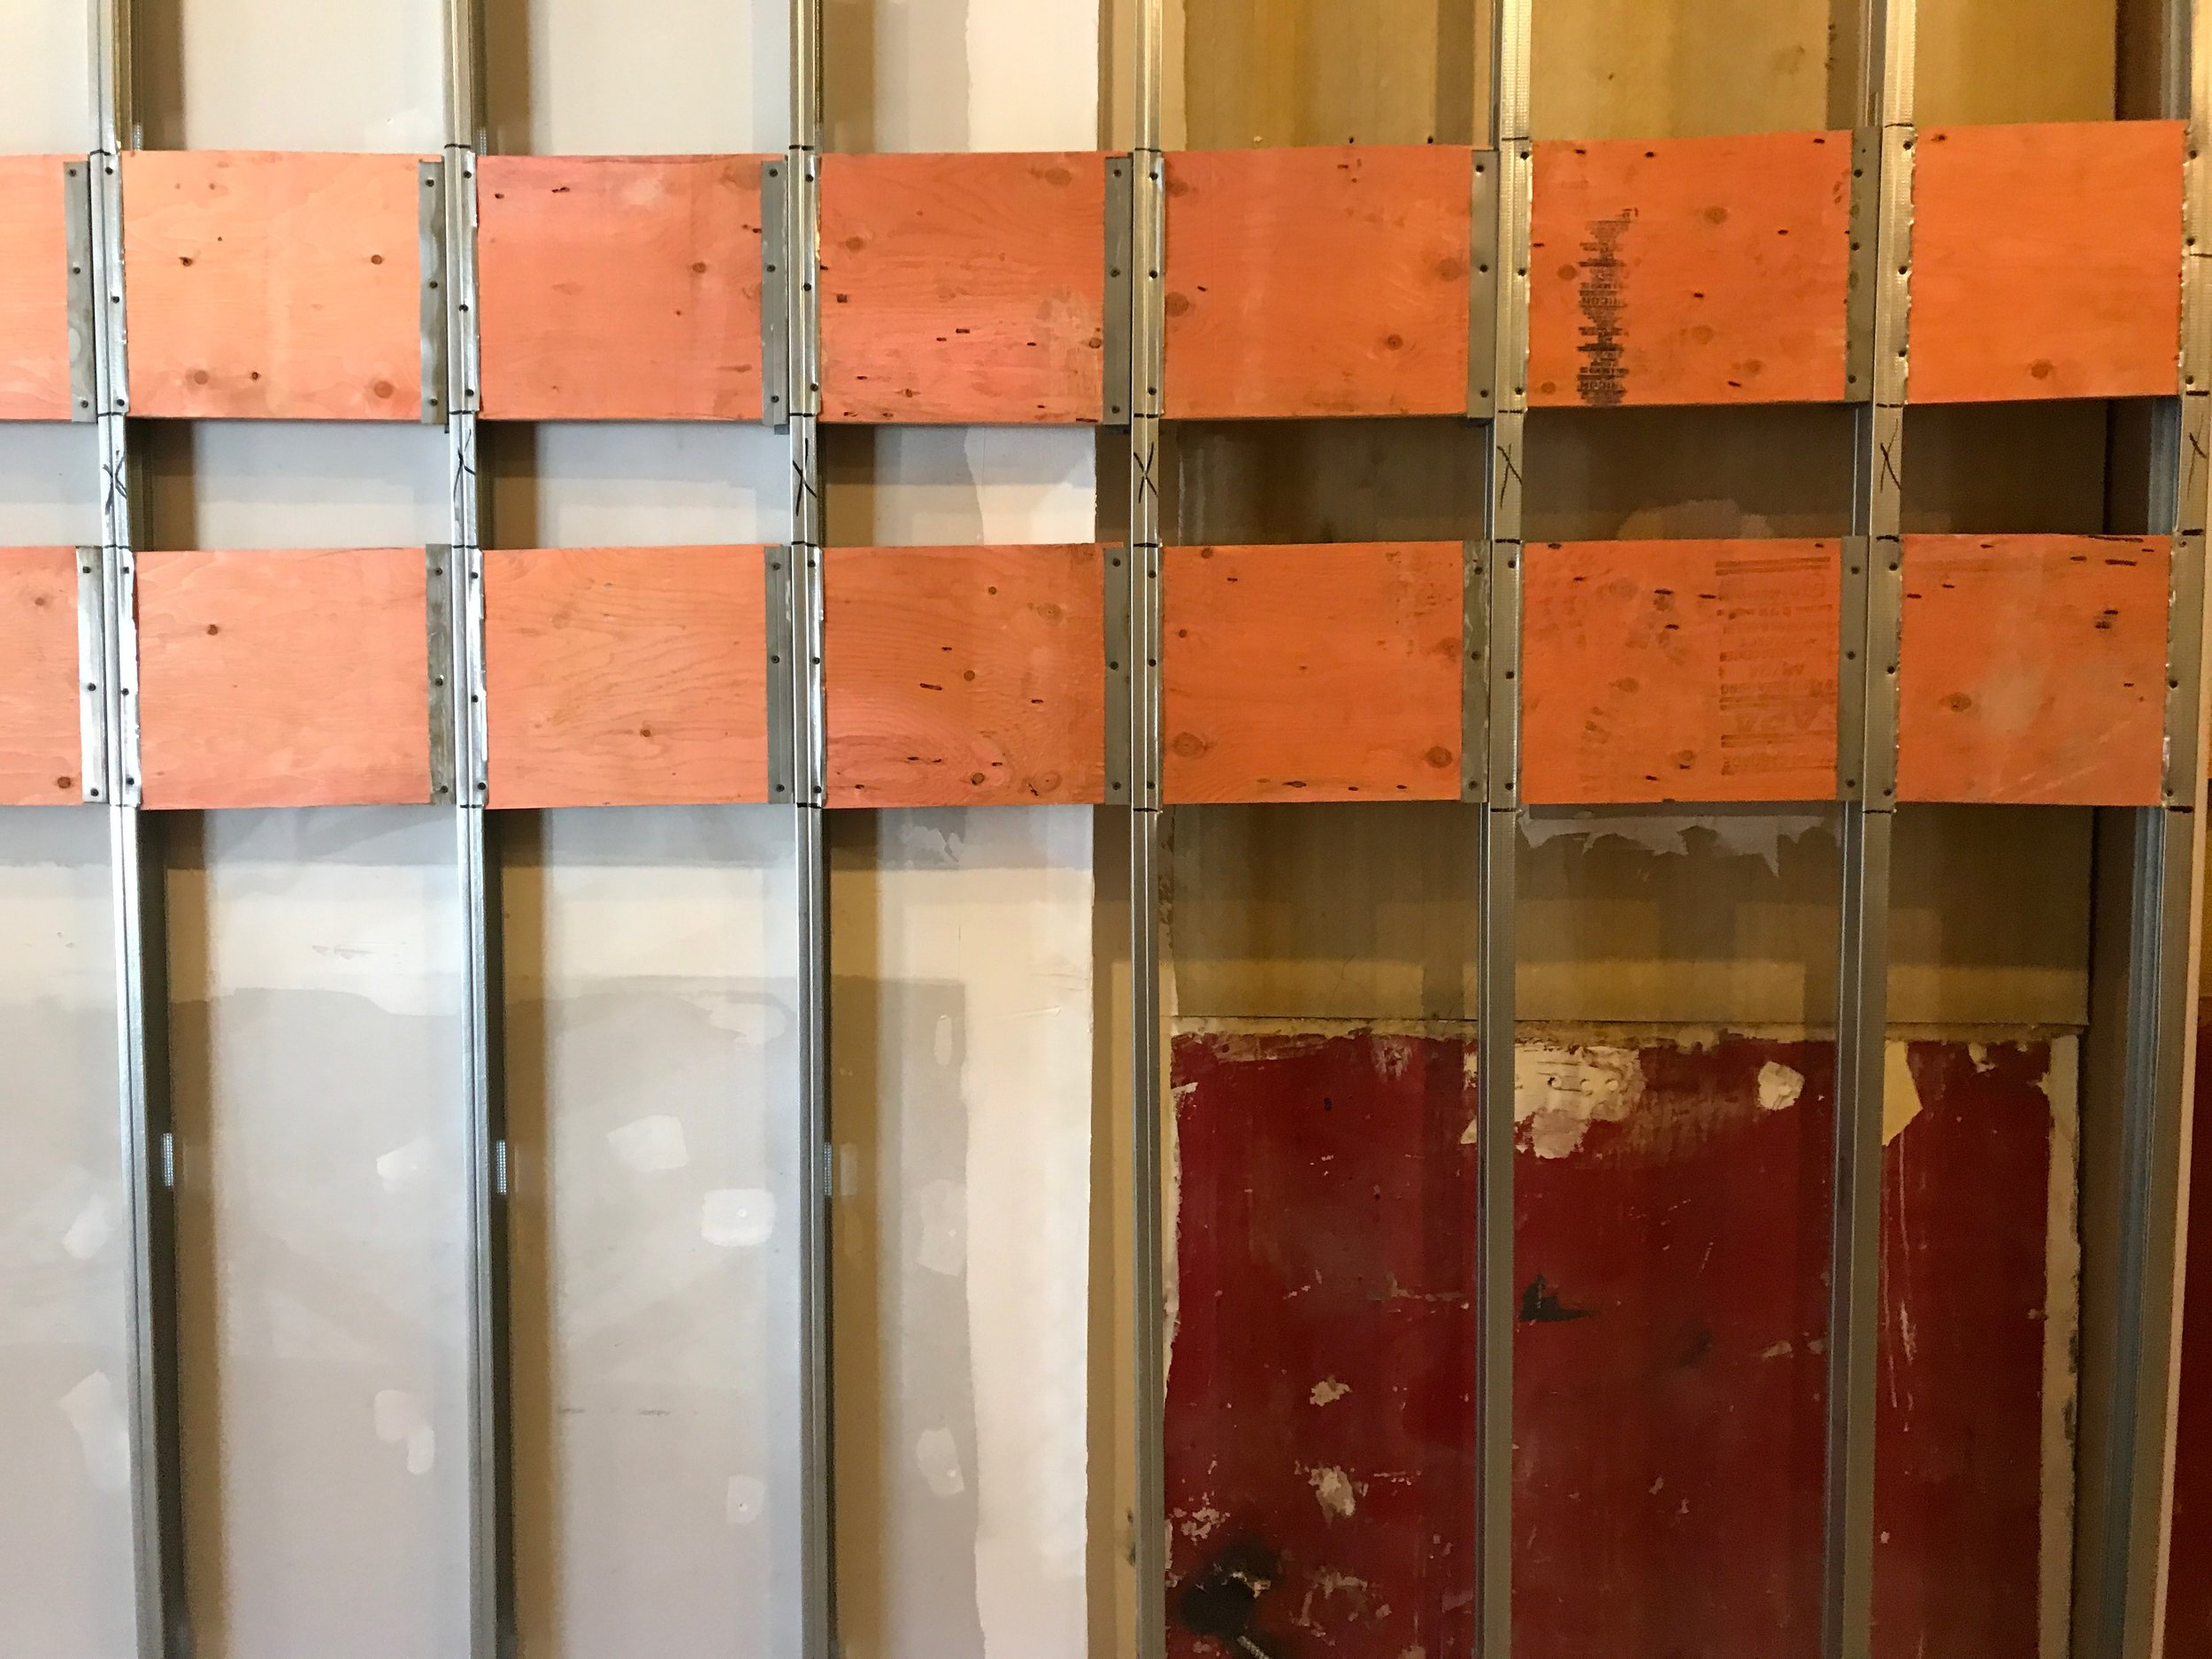 If memory serves these orange panels are this color because they're treated with a flame retardant and I loved the color so much I kept a sample to work with later on.